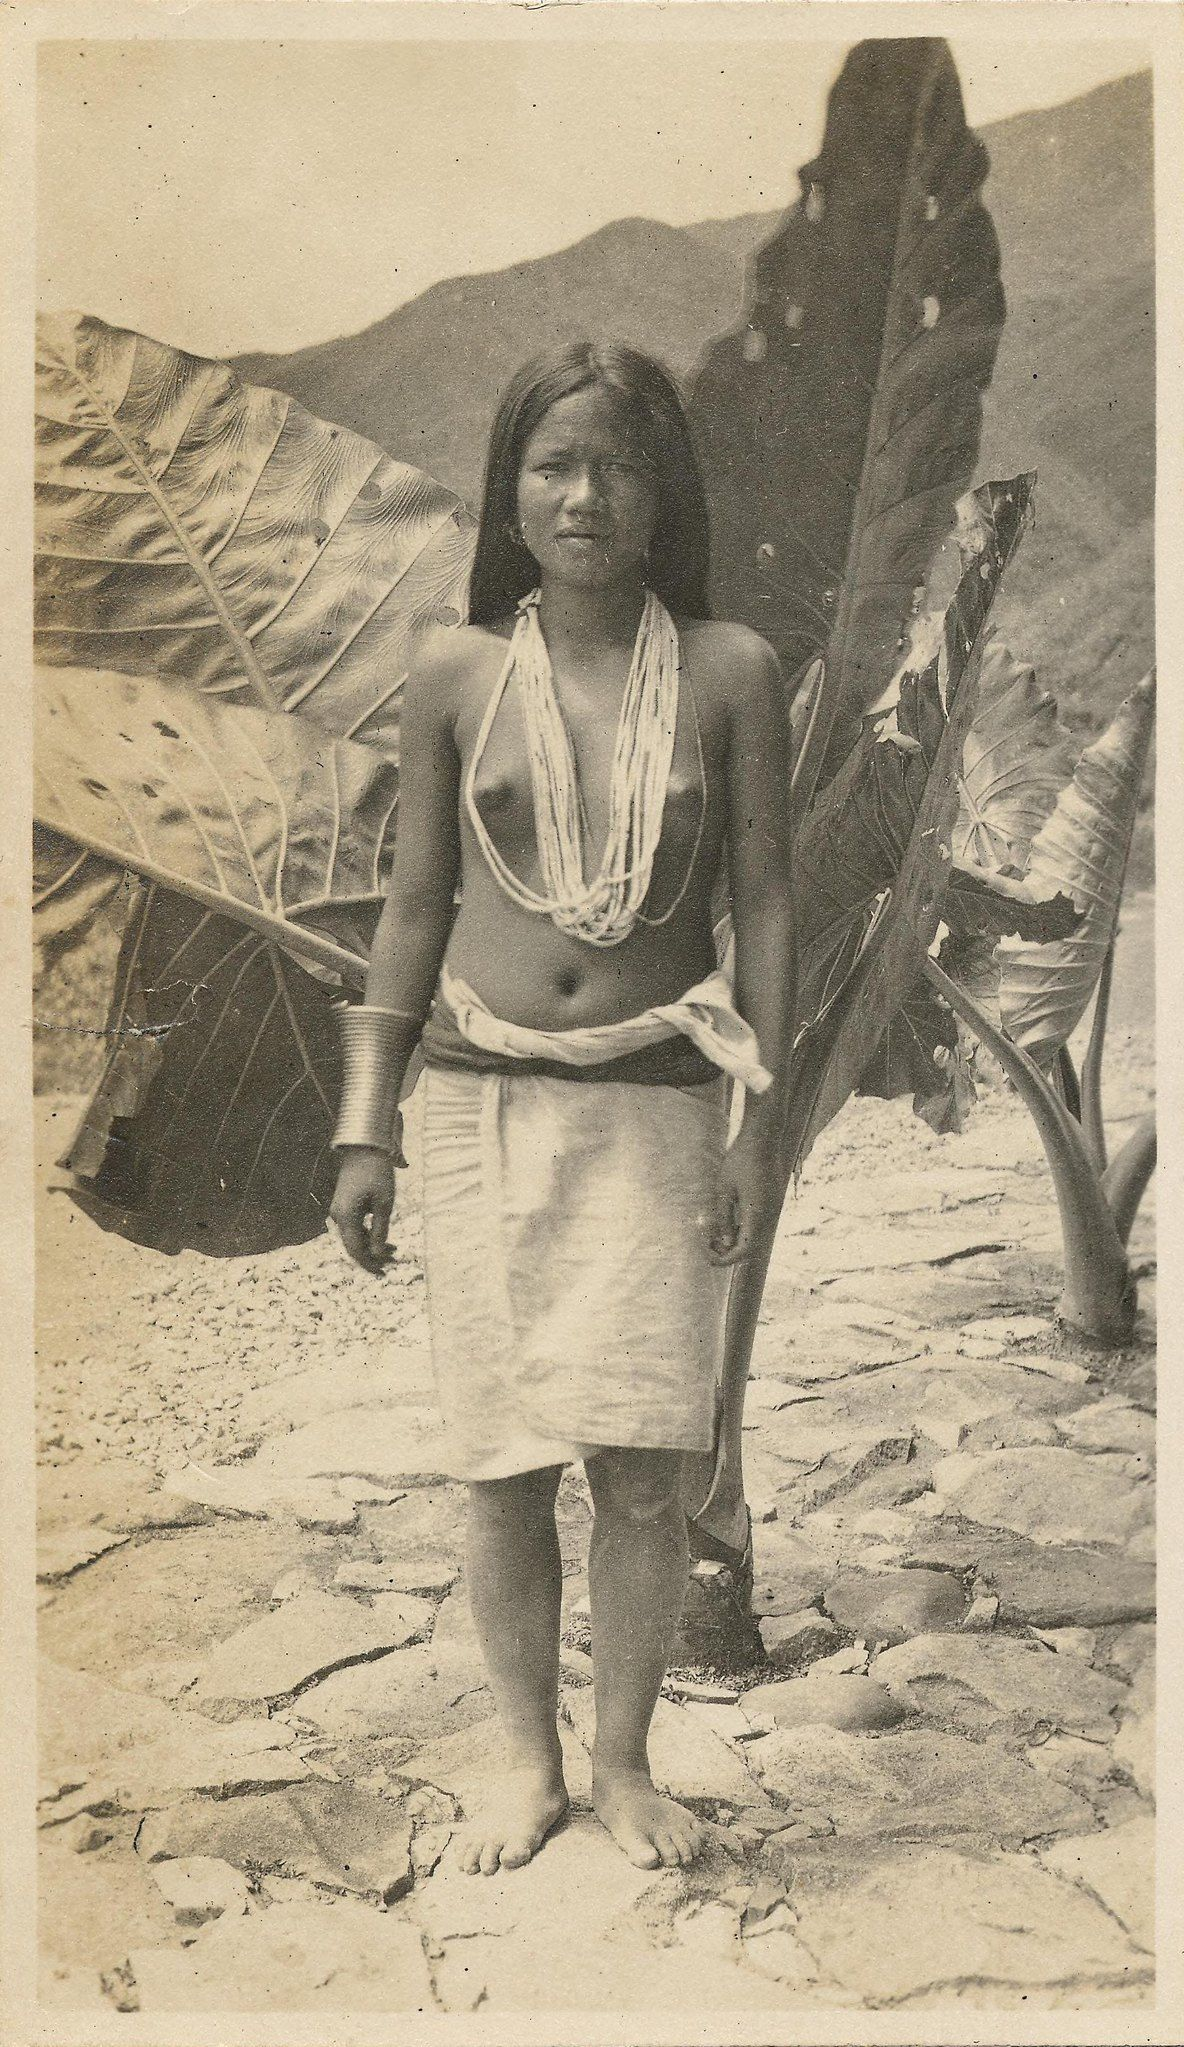 Beautiful women from over 100 years ago as seen on vintage